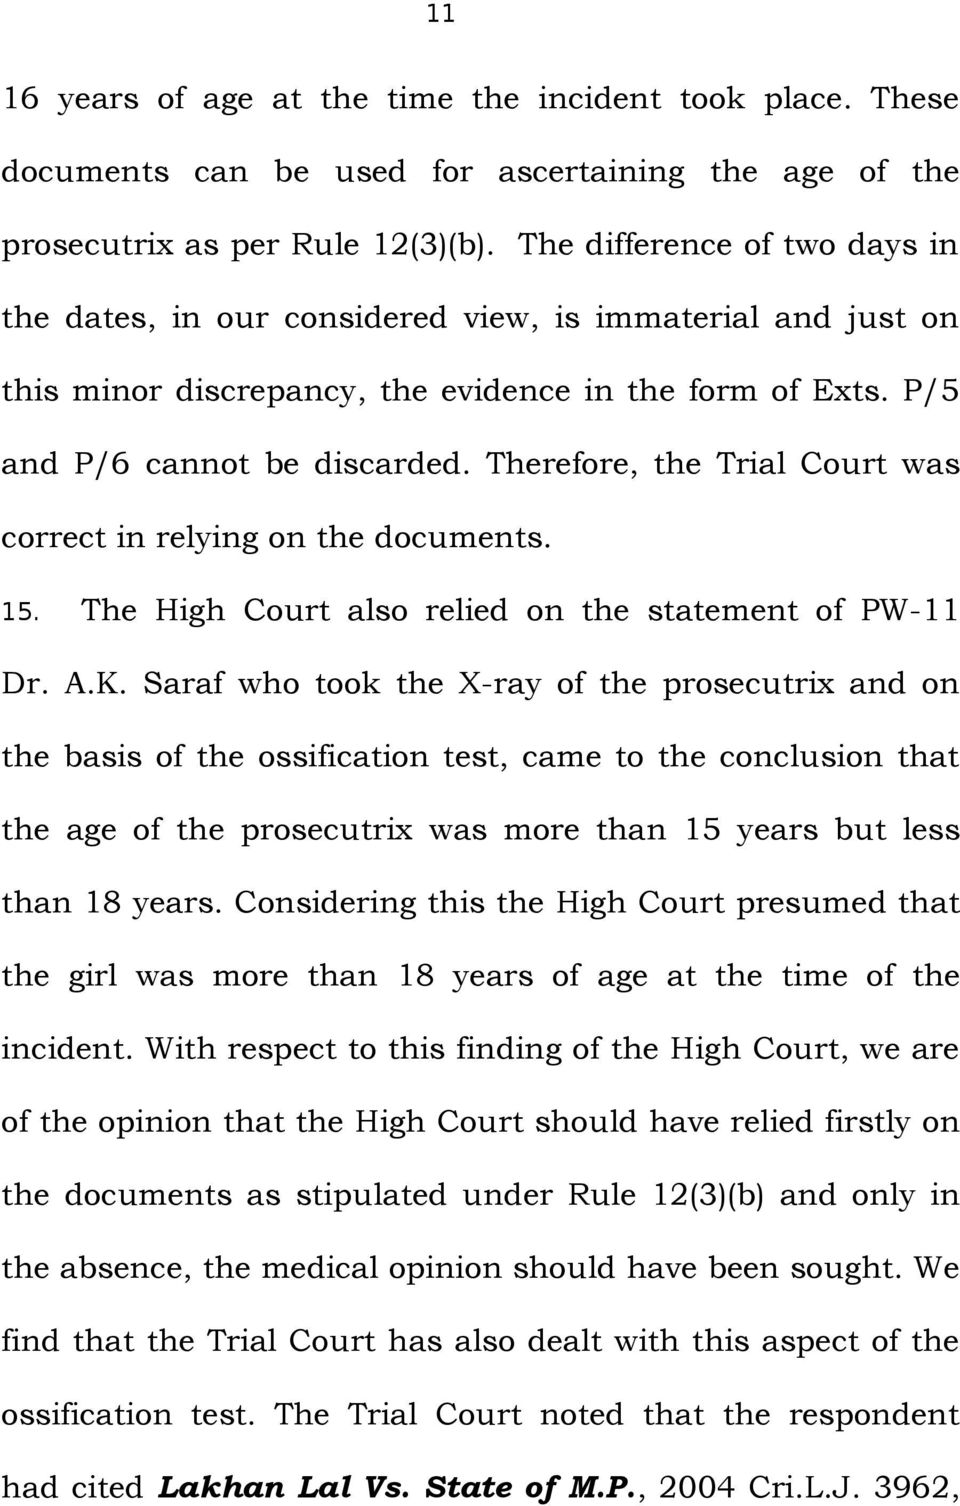 Therefore, the Trial Court was correct in relying on the documents. 15. The High Court also relied on the statement of PW-11 Dr. A.K.